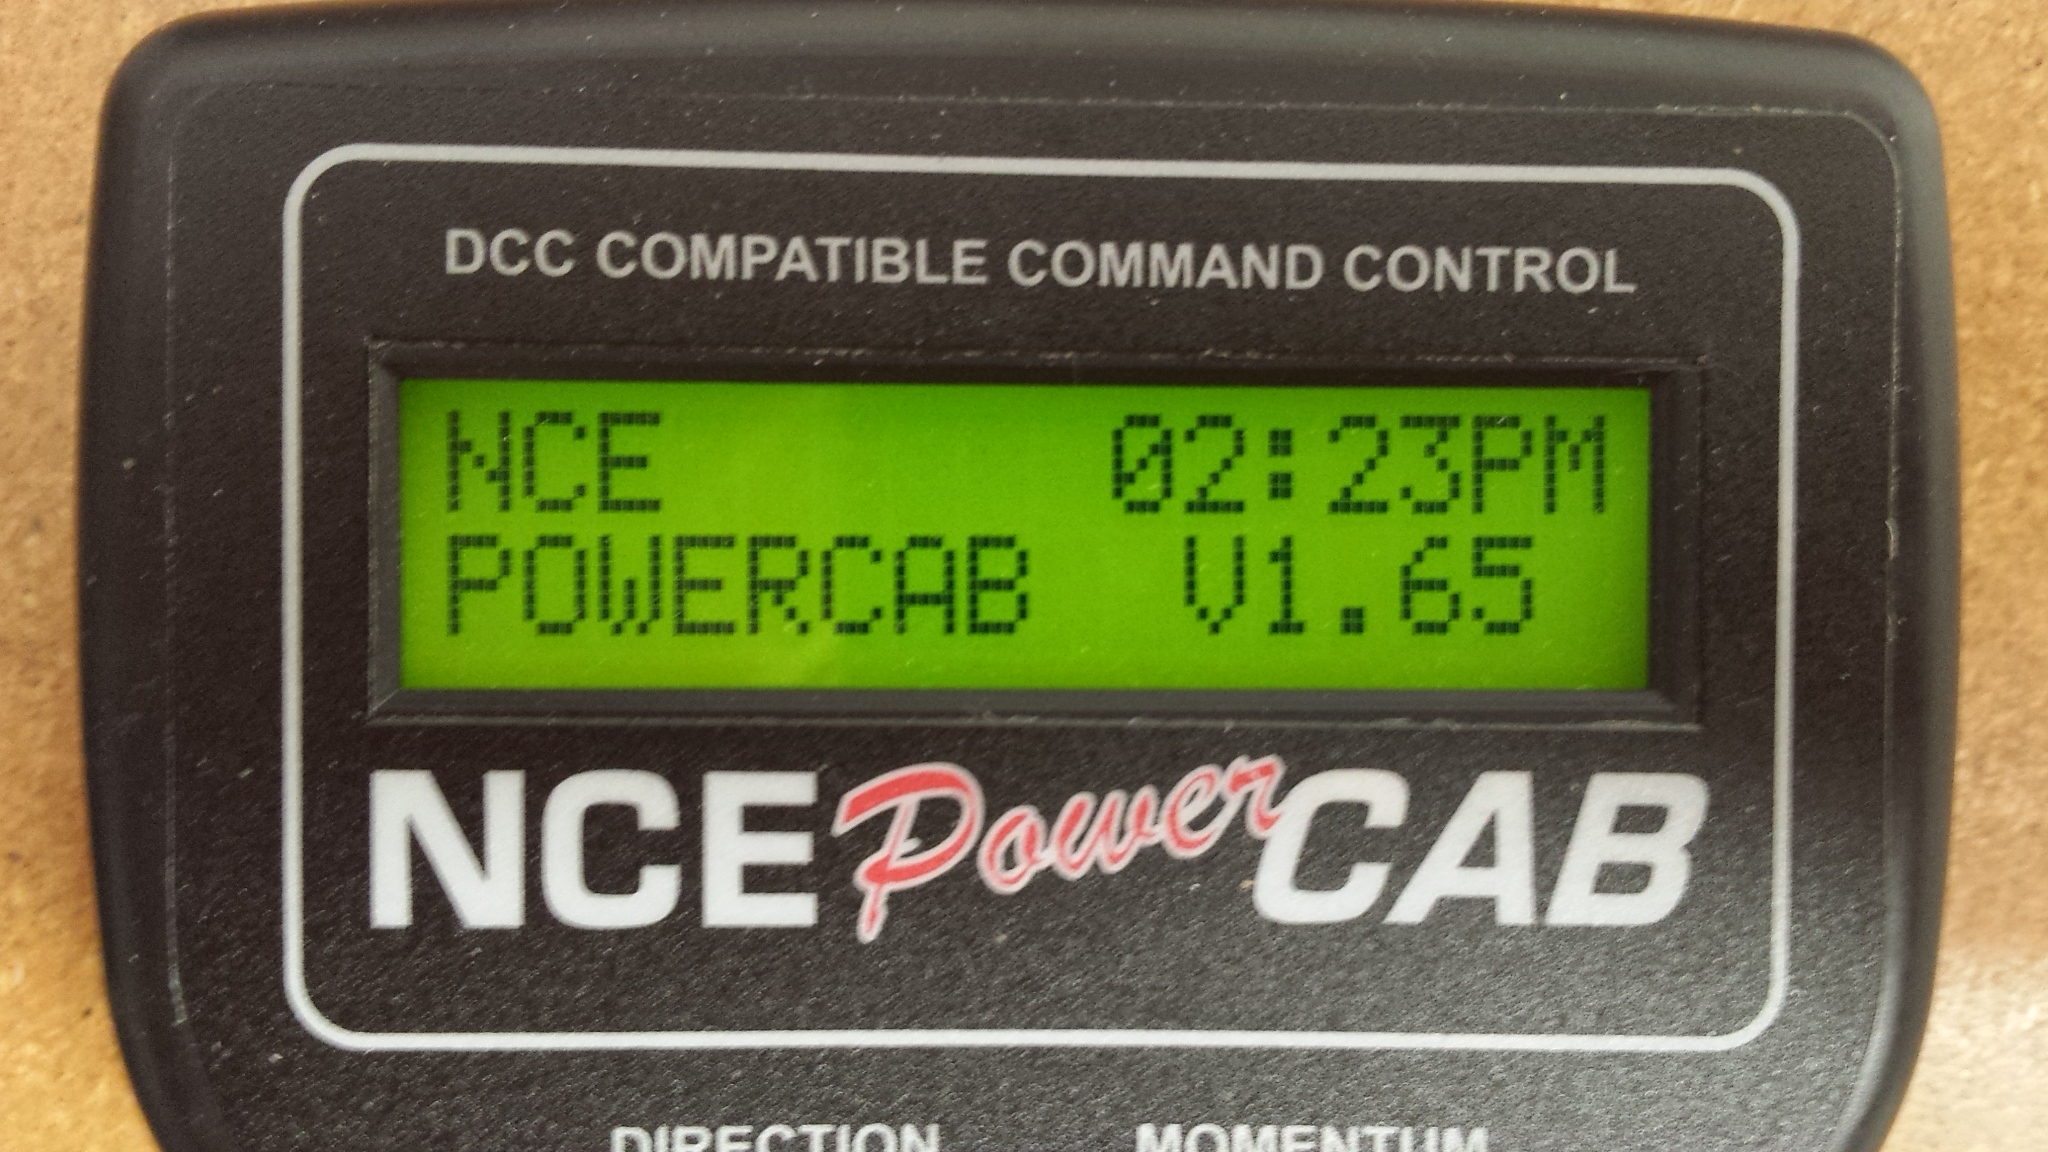 What Power Cab Version Do I Have? – Welcome To The Nce Information - Nce Power Cab Usb Wiring Diagram